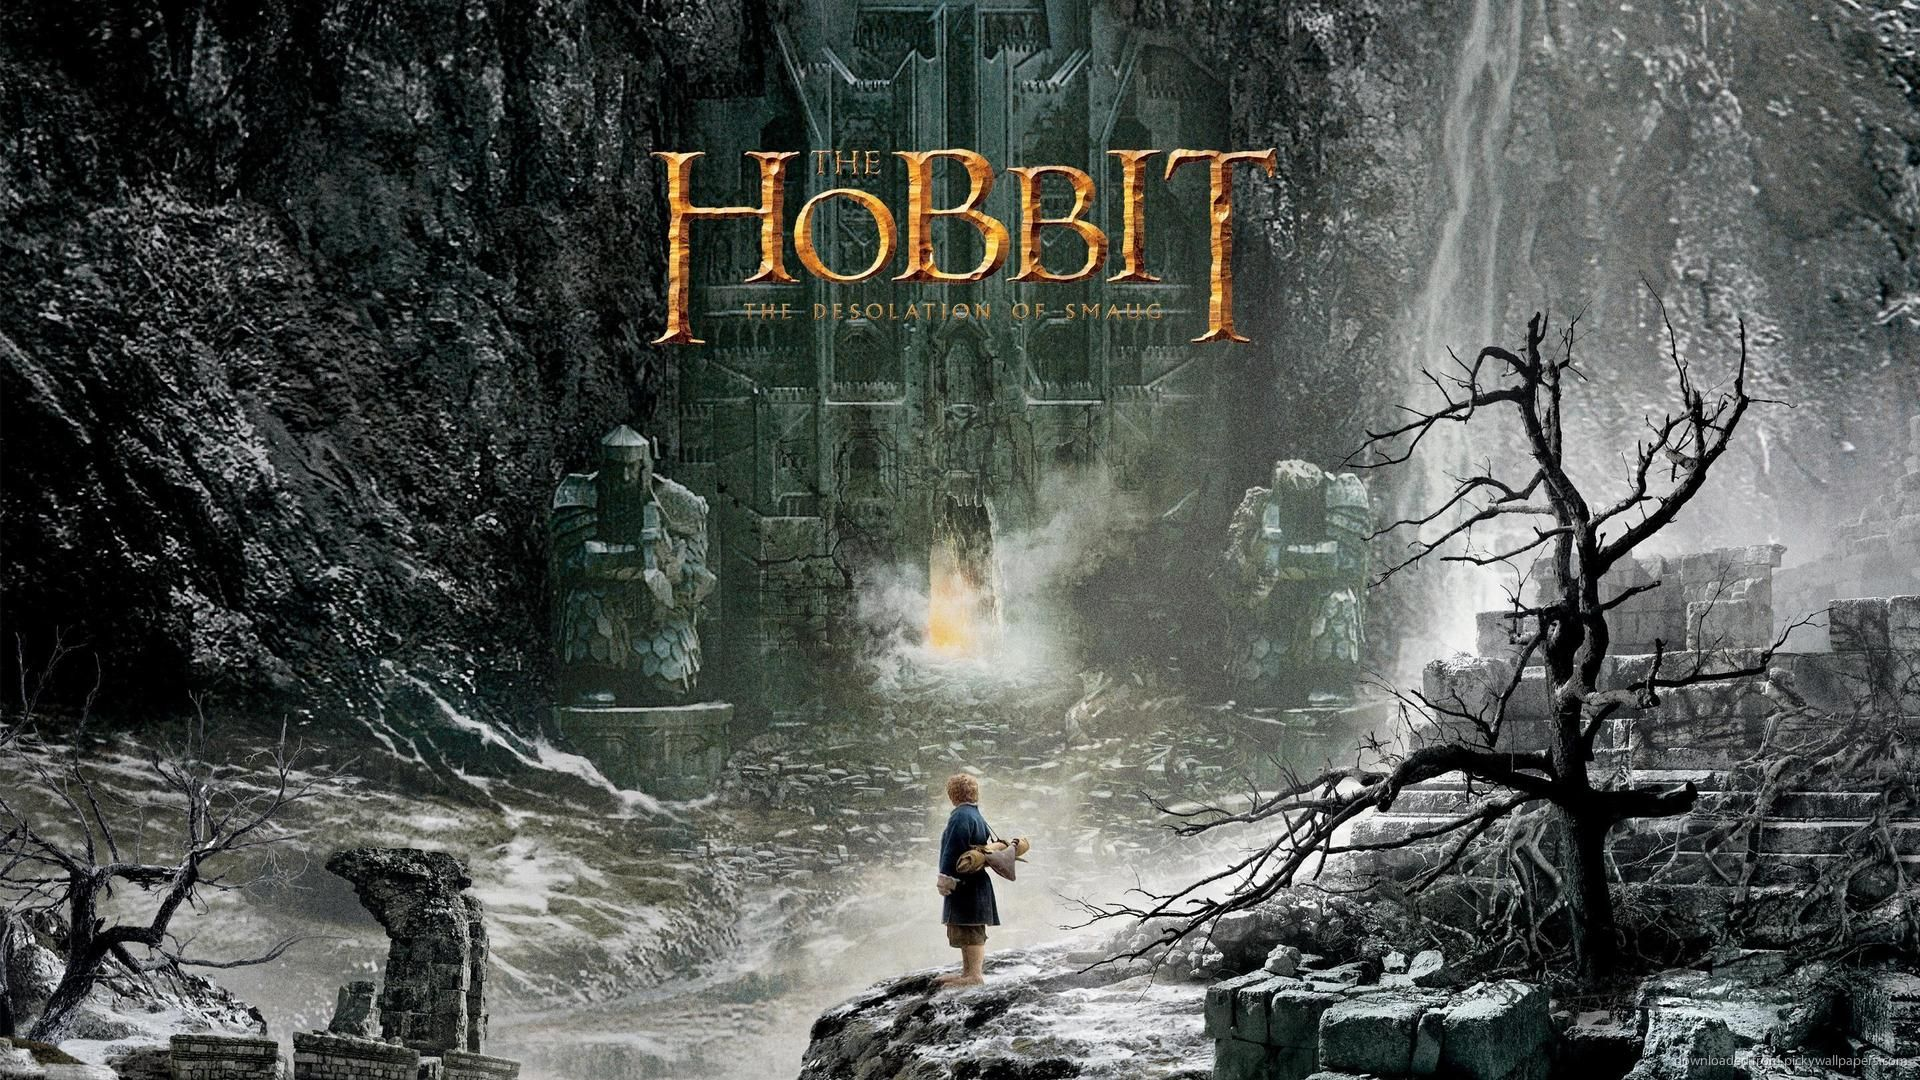 Download 1920x1080 The Hobbit Desolation Of Smaug Wallpaper